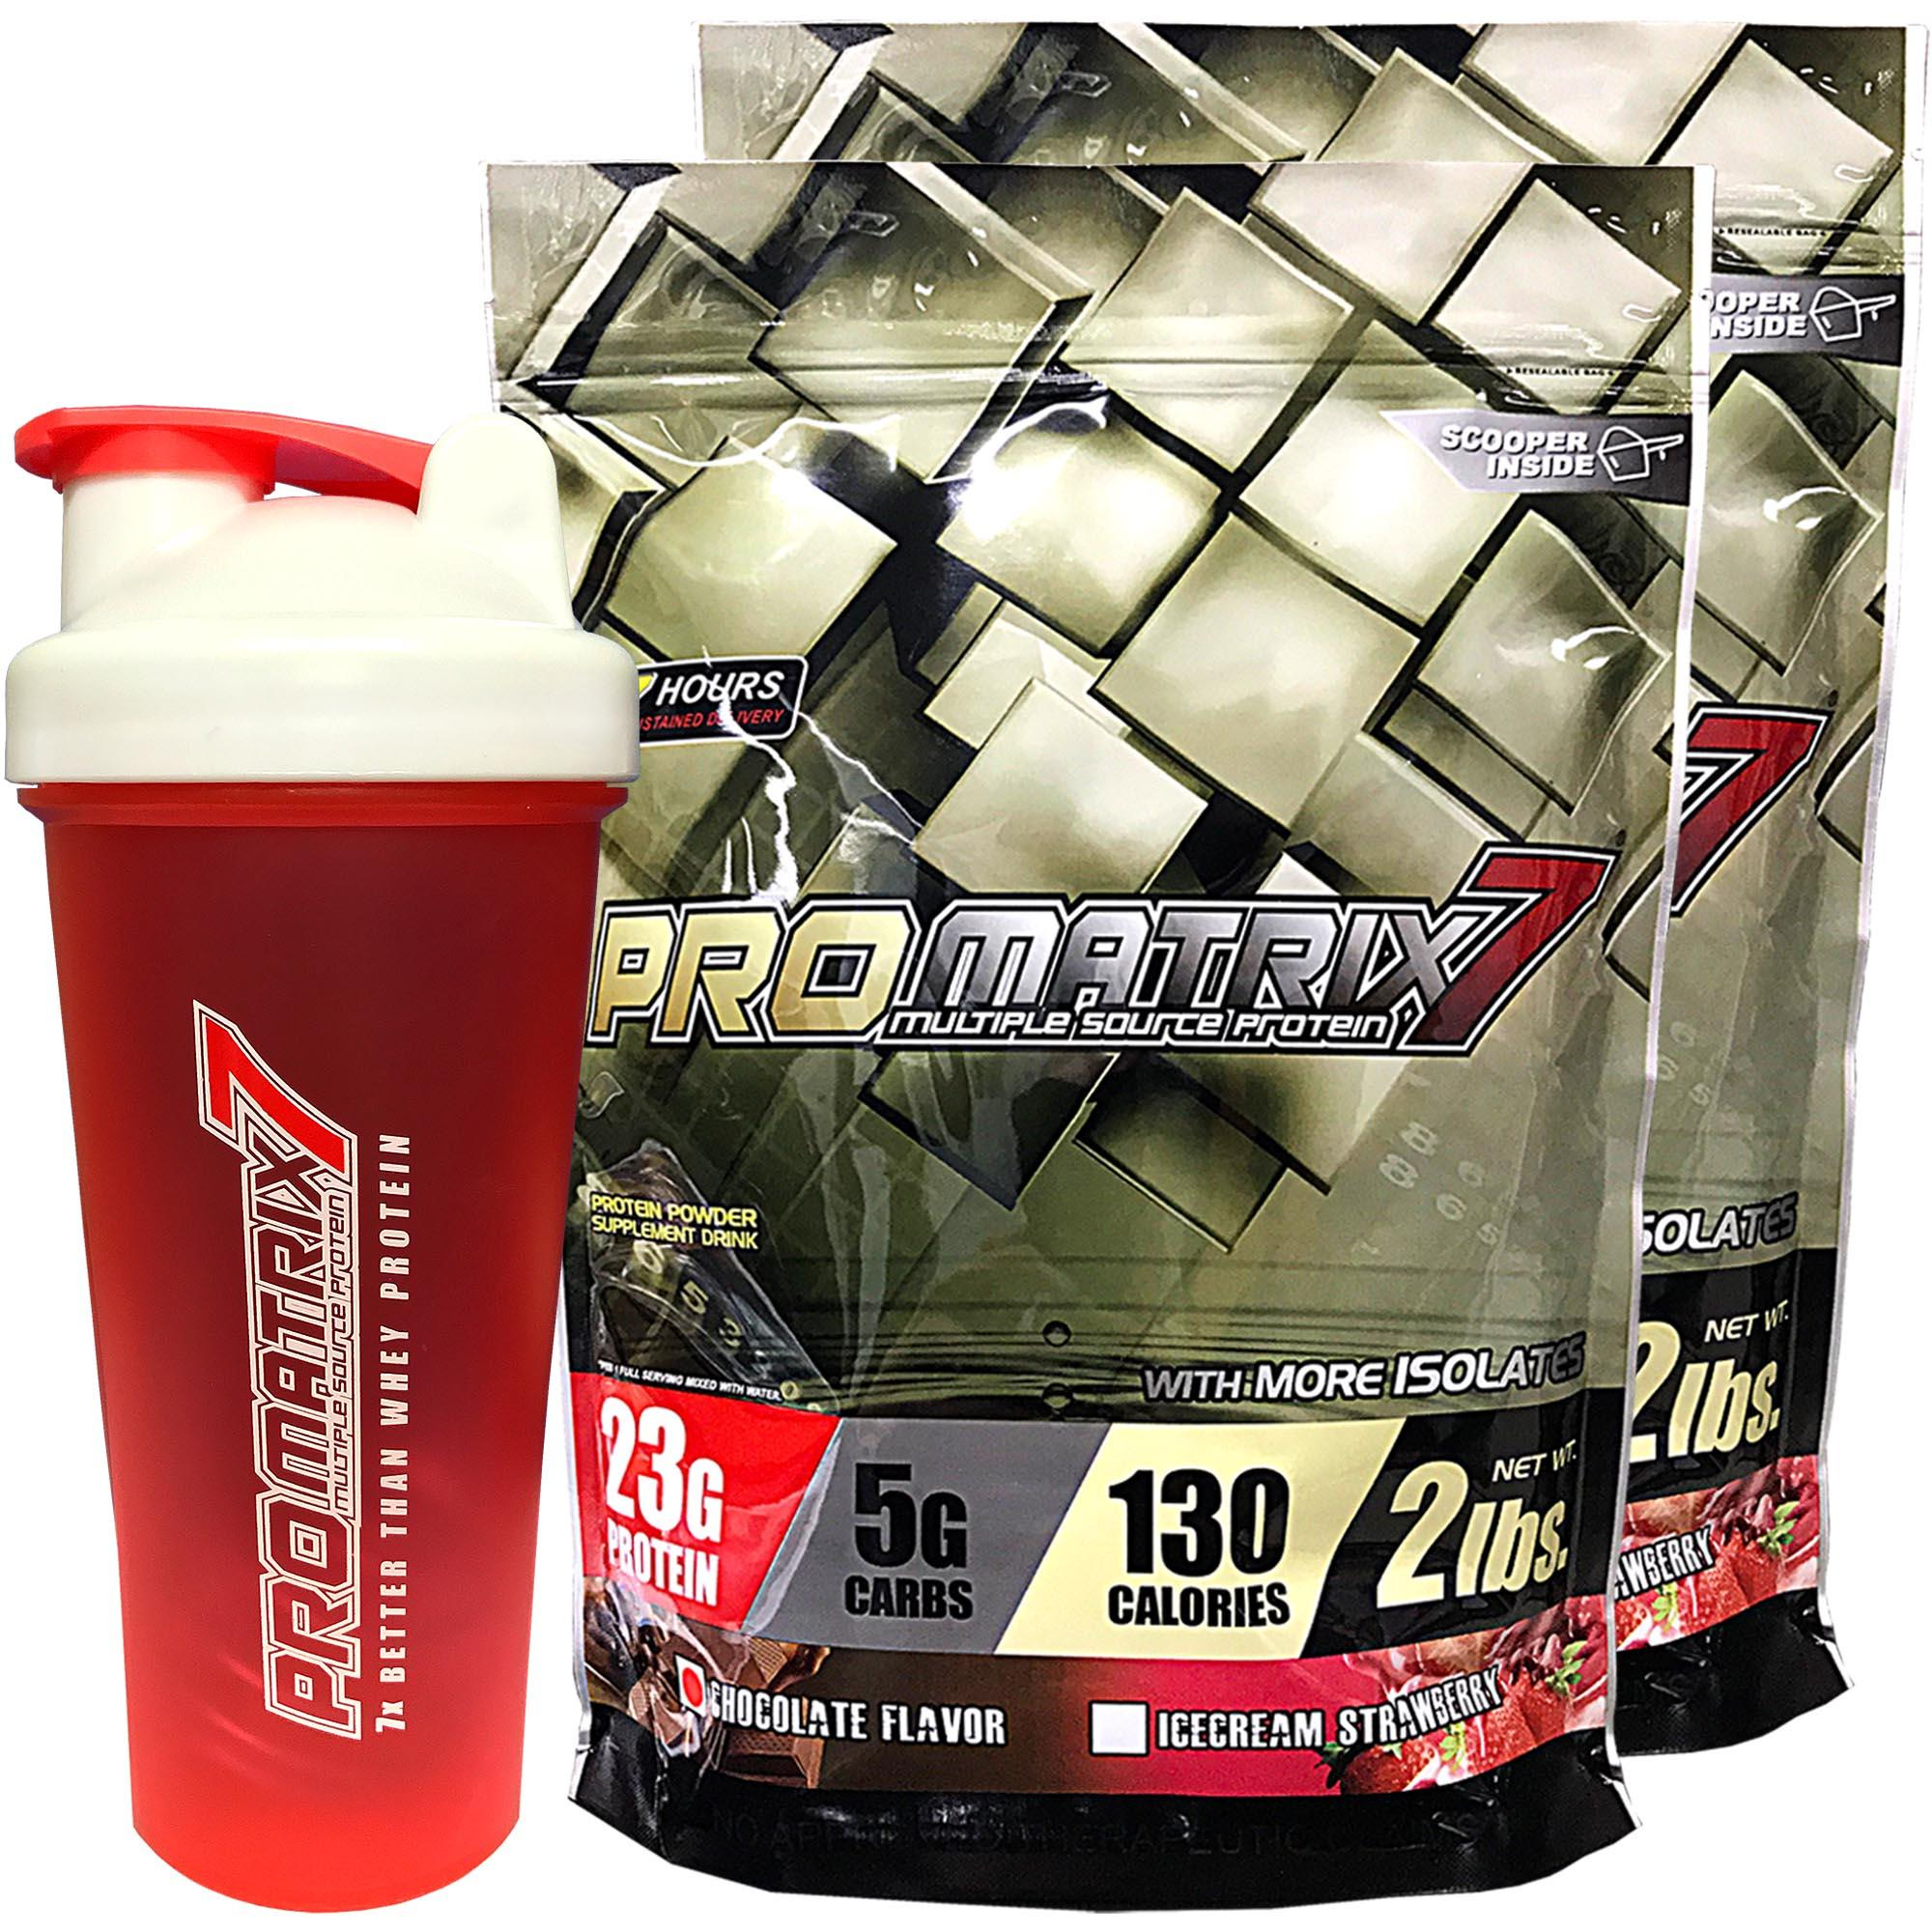 Promatrix7 set of 2pcs 2lbs with Whey Shaker (Chocolate and Strawberry)